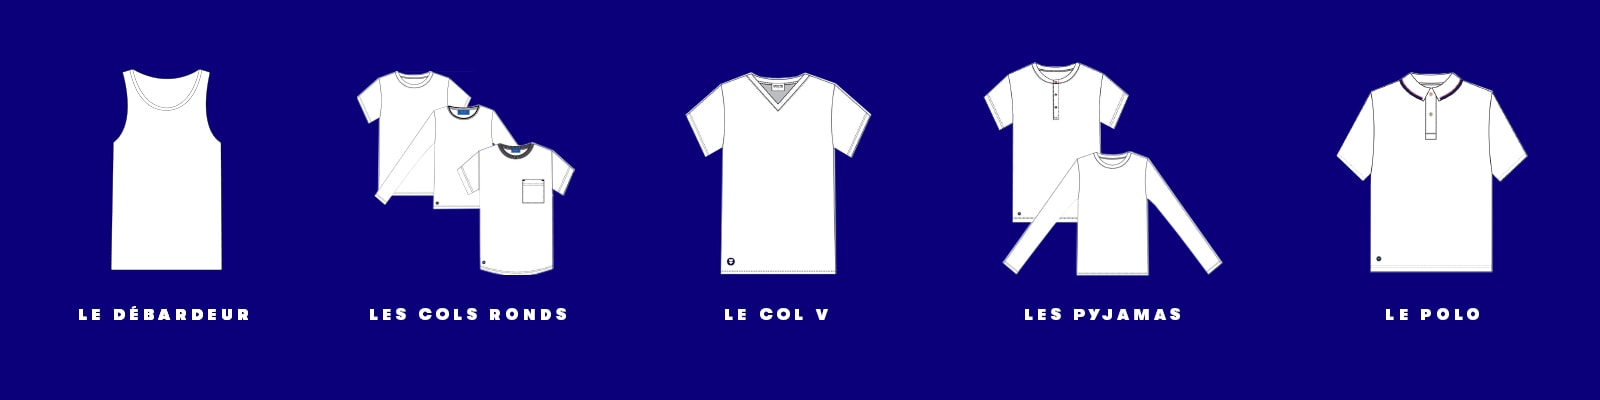 T-Shirts Mixtes Made in France